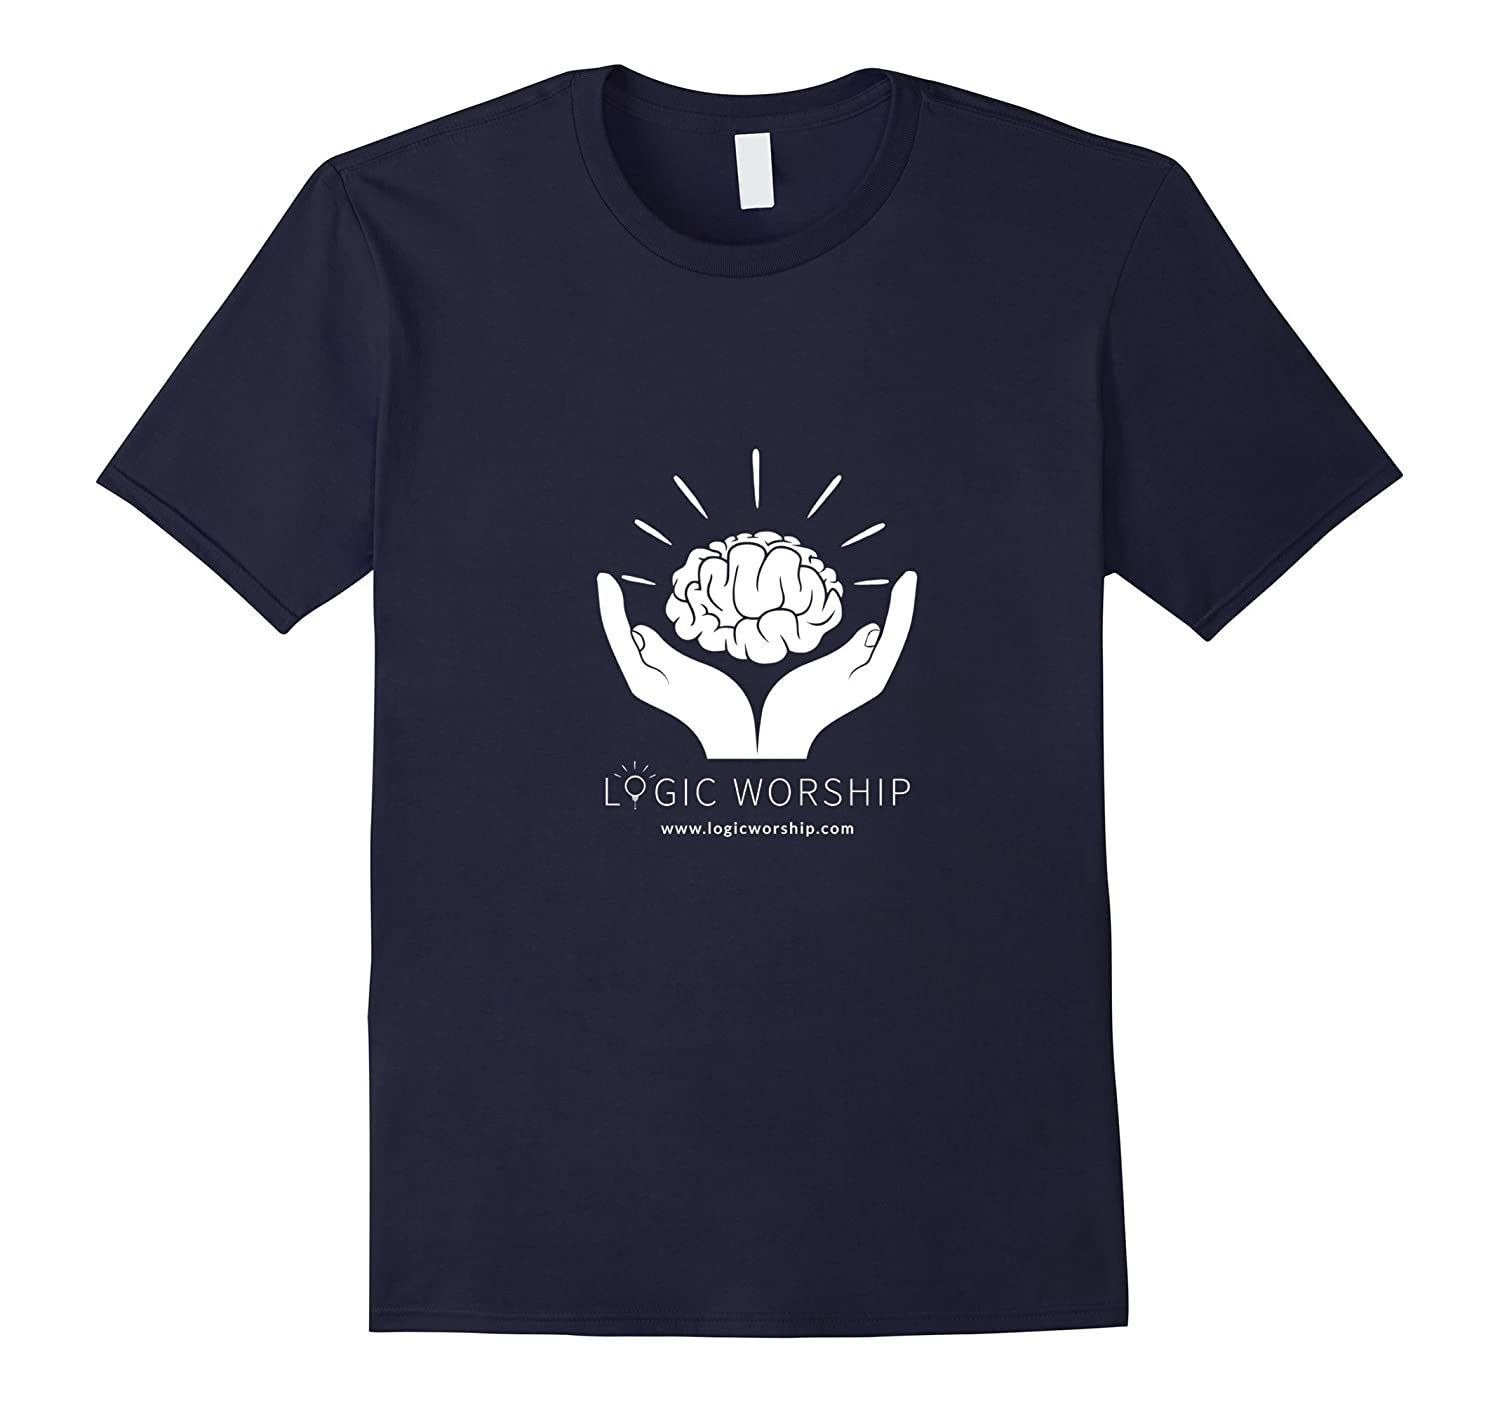 Logic Worship Brand Launch Alpha T-Shirt Relaxed Fit-TH